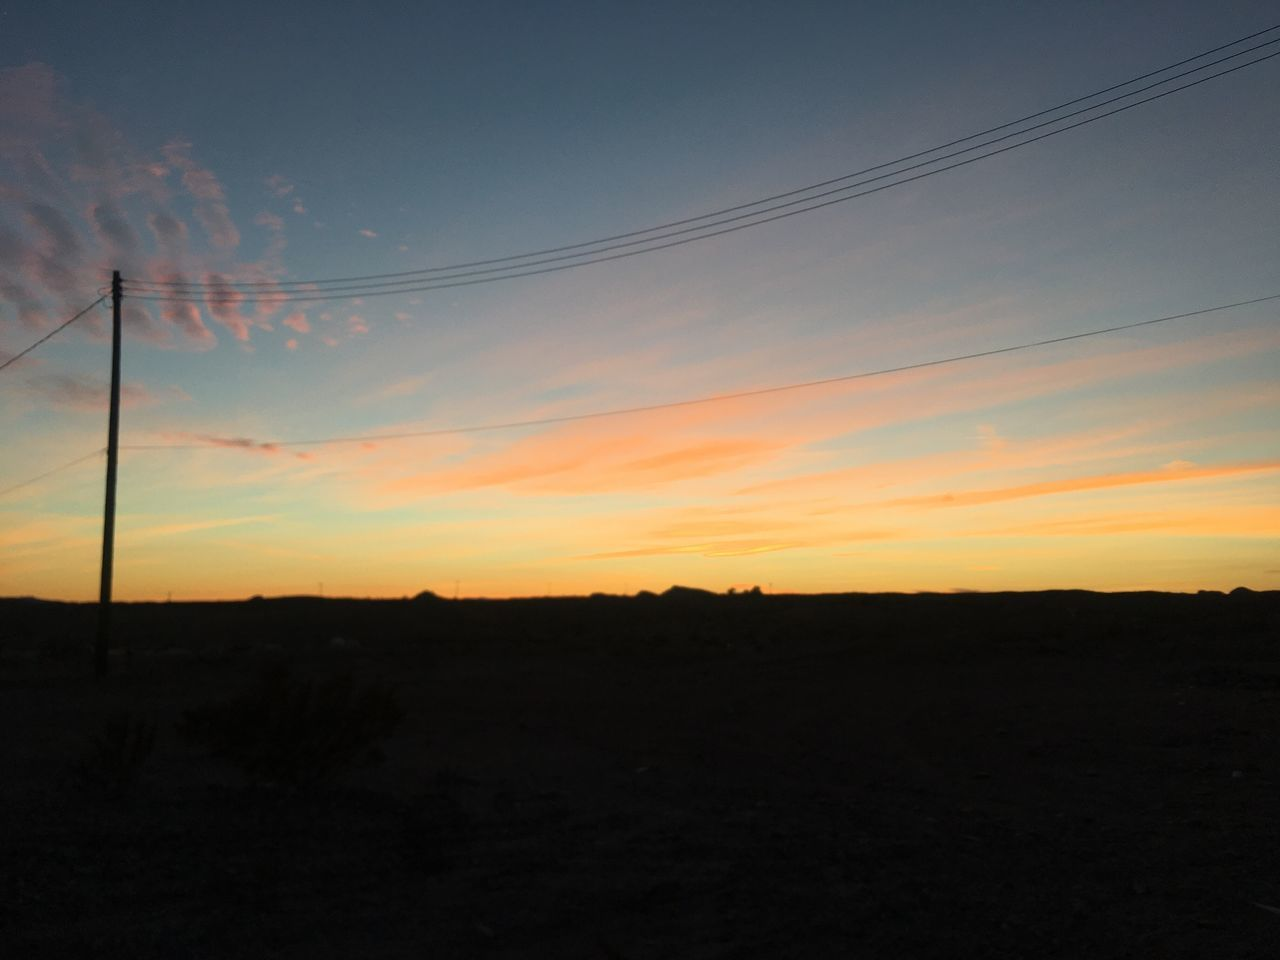 Sky Sunset Electricity  Silhouette Power Line  Tranquil Scene No People Cable Outdoors Scenics Beauty In Nature Landscape